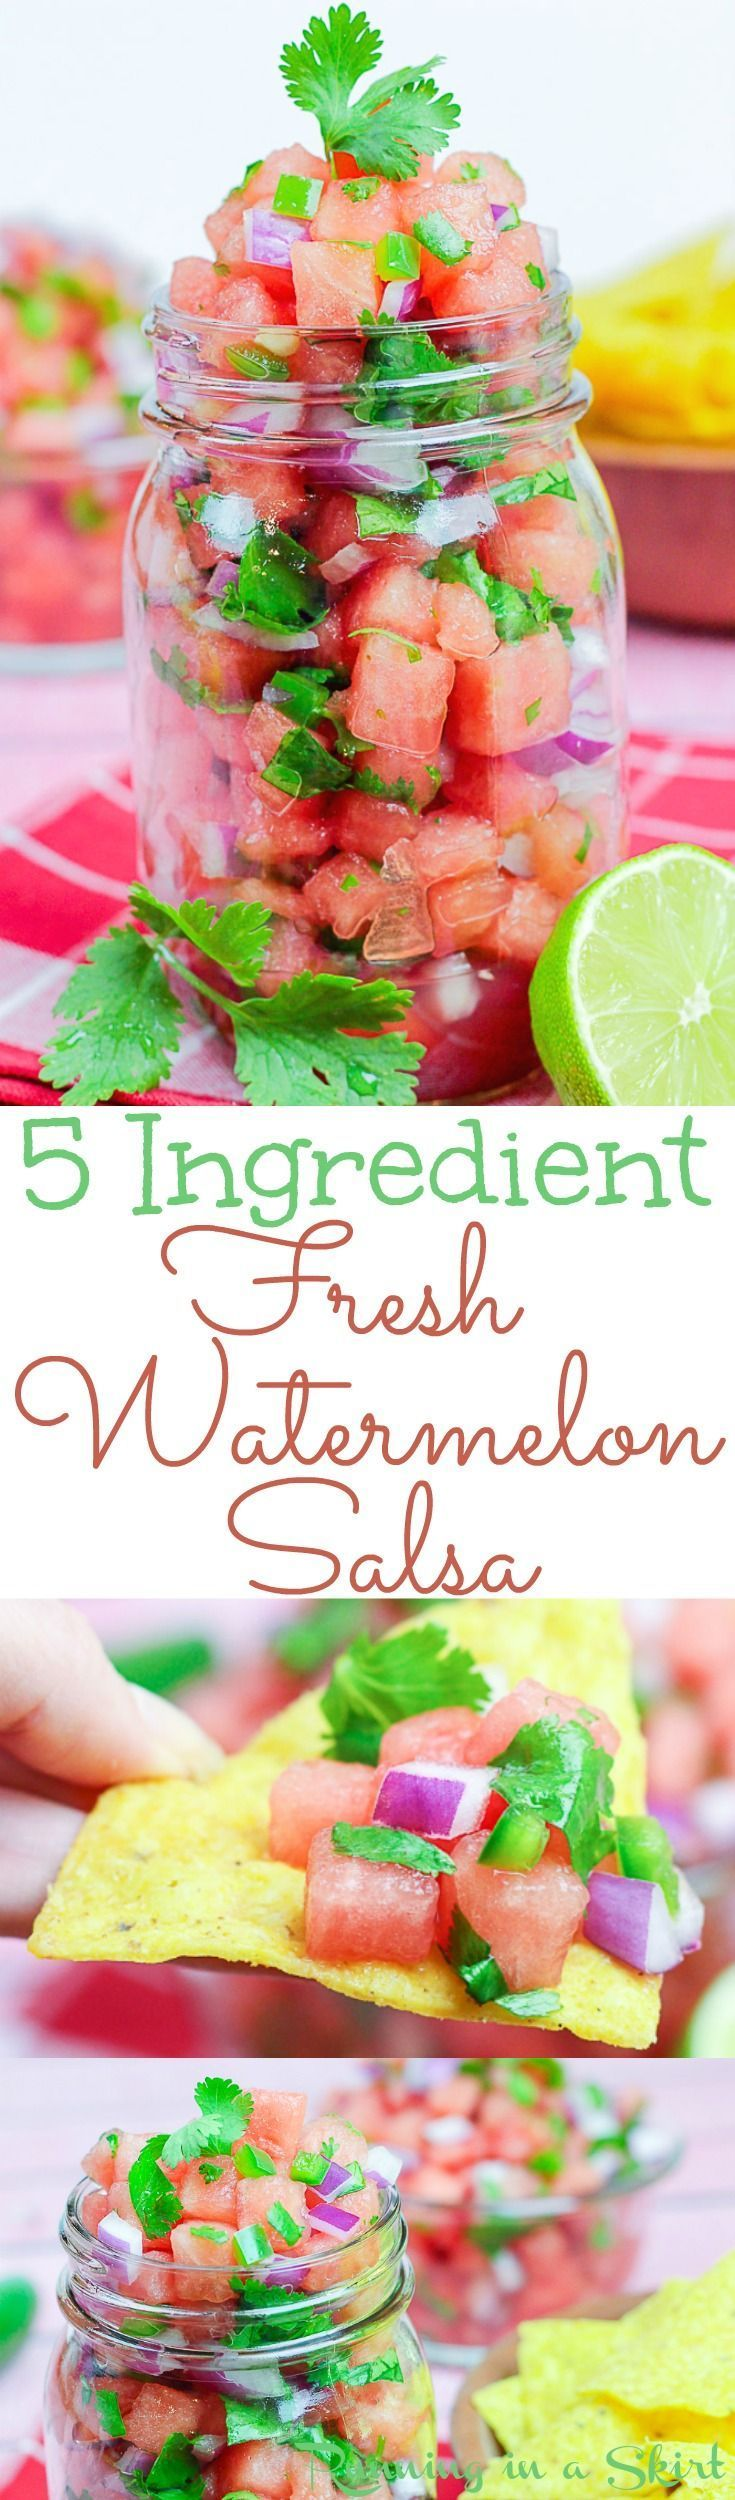 5 Ingredient Fresh Watermelon Salsa recipe.  Simple, easy and healthy!  Uses lime juice and cilantro. This just might be the BEST recipe of summer. / Running in a Skirt